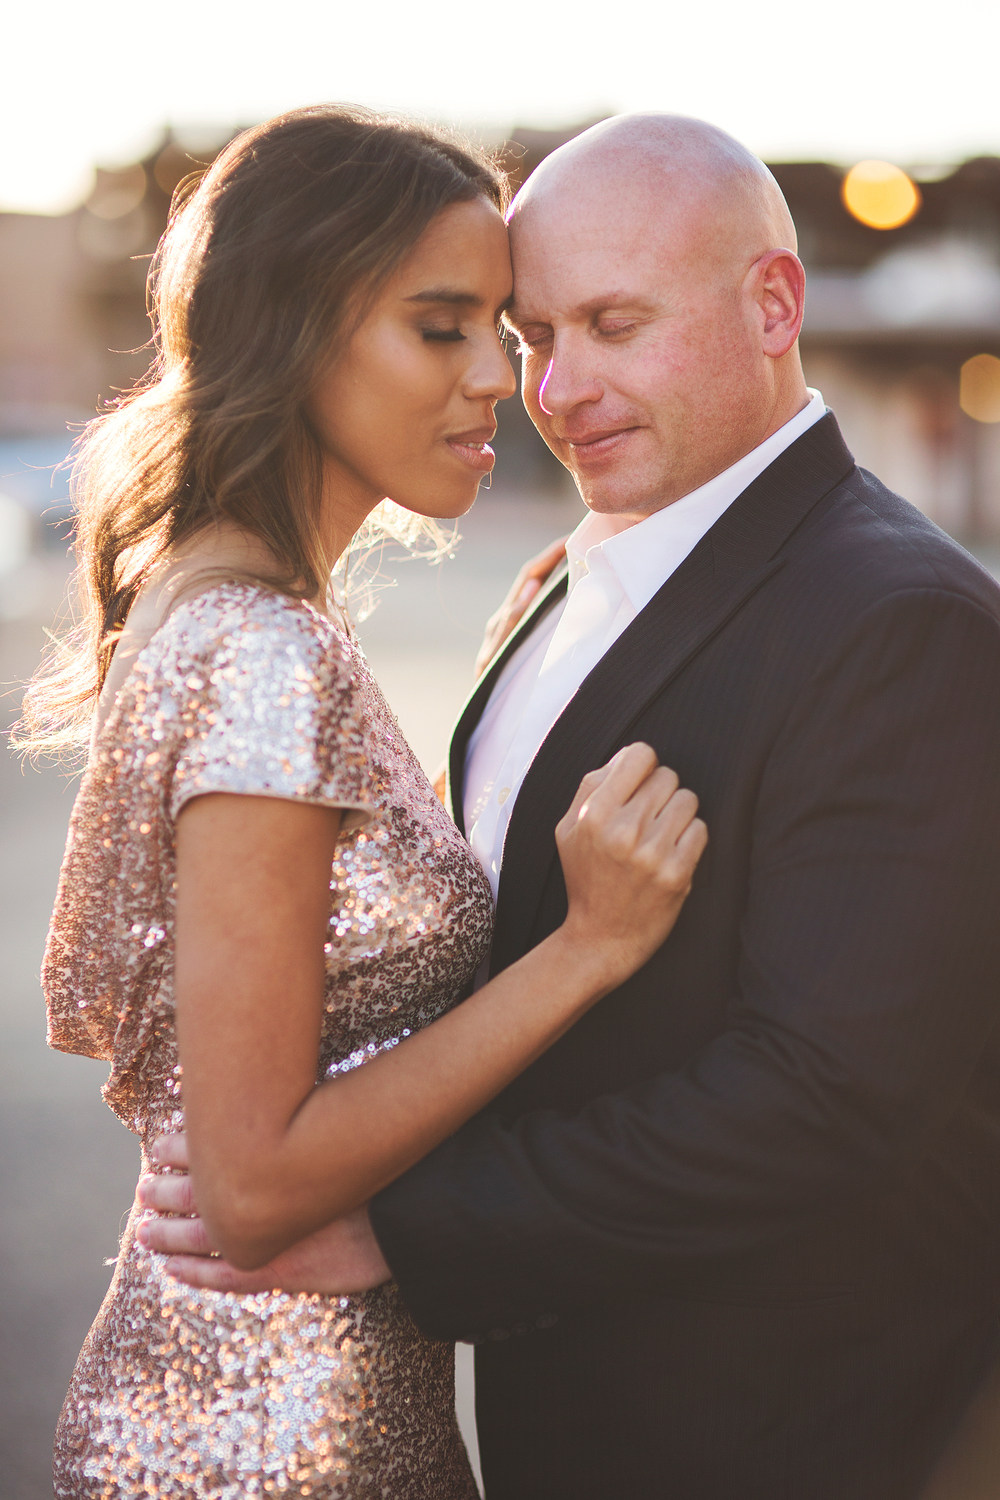 Old Town Albuquerque Elopement | New Mexico Wedding | Liz Anne Photography 09.jpg